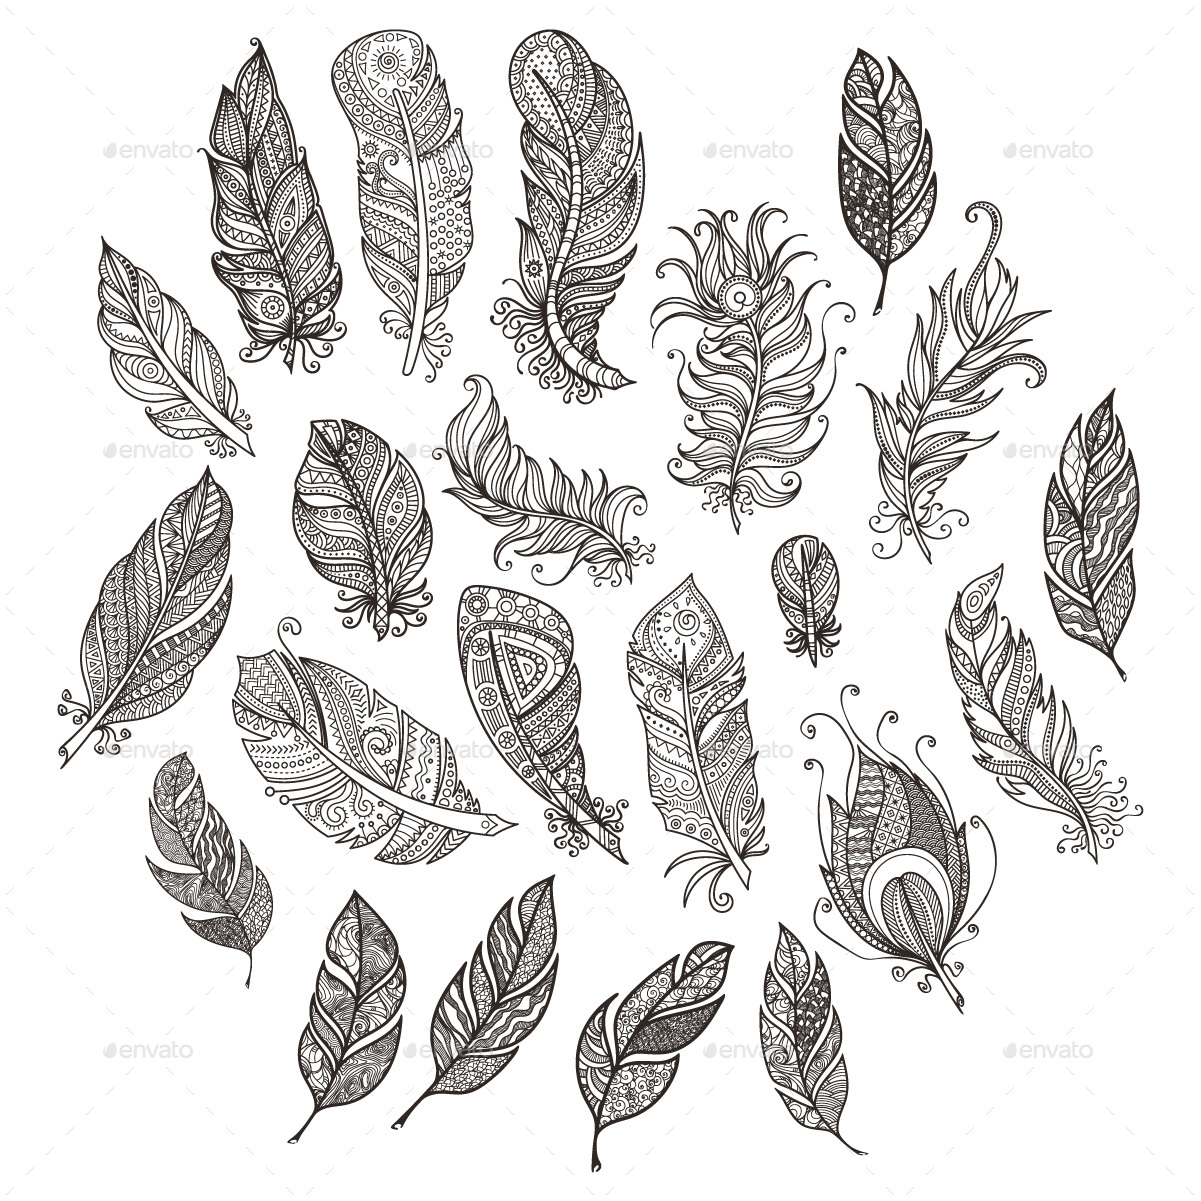 Vector Ornate Set of Stylized and Abstract Feathers